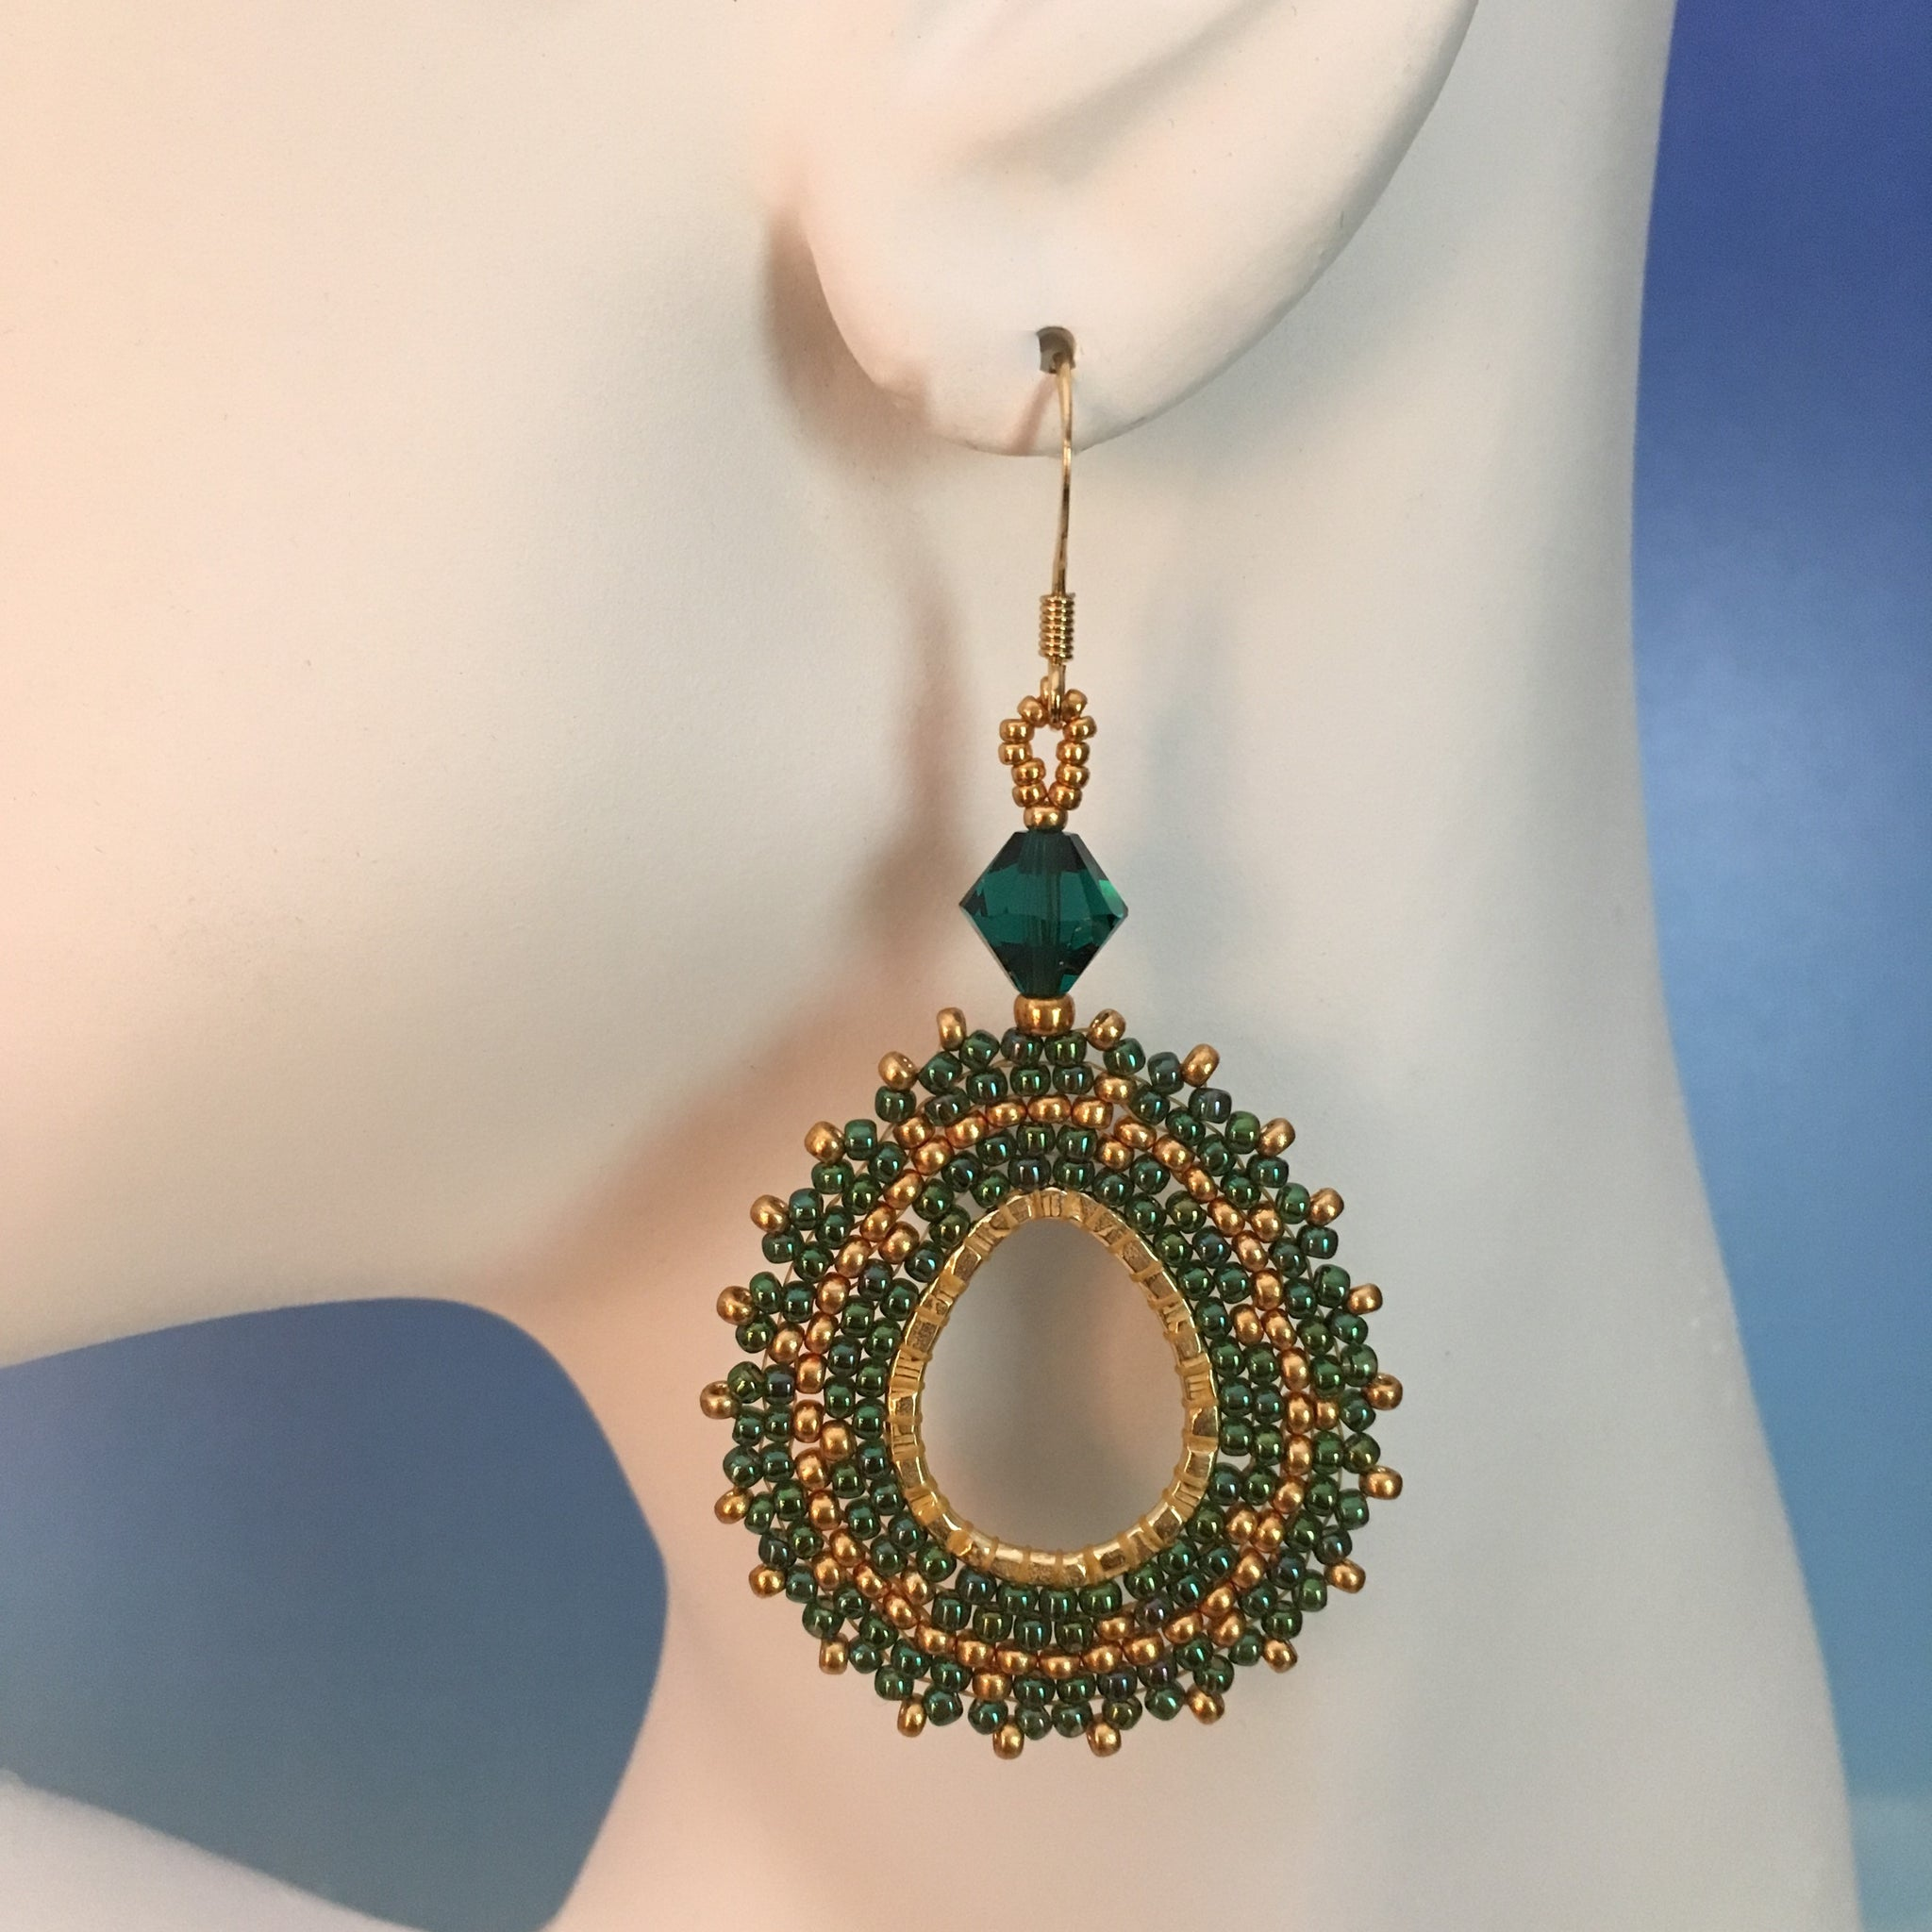 Emerald Green and Gold Oval Teardrop Earrings with Swarovski™ Crystals